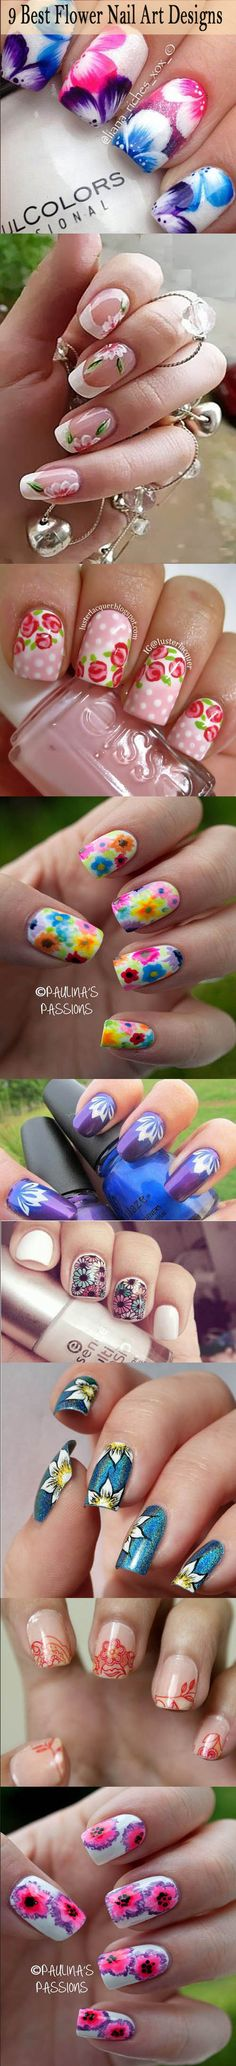 9 Best Flower Nail Art Designs